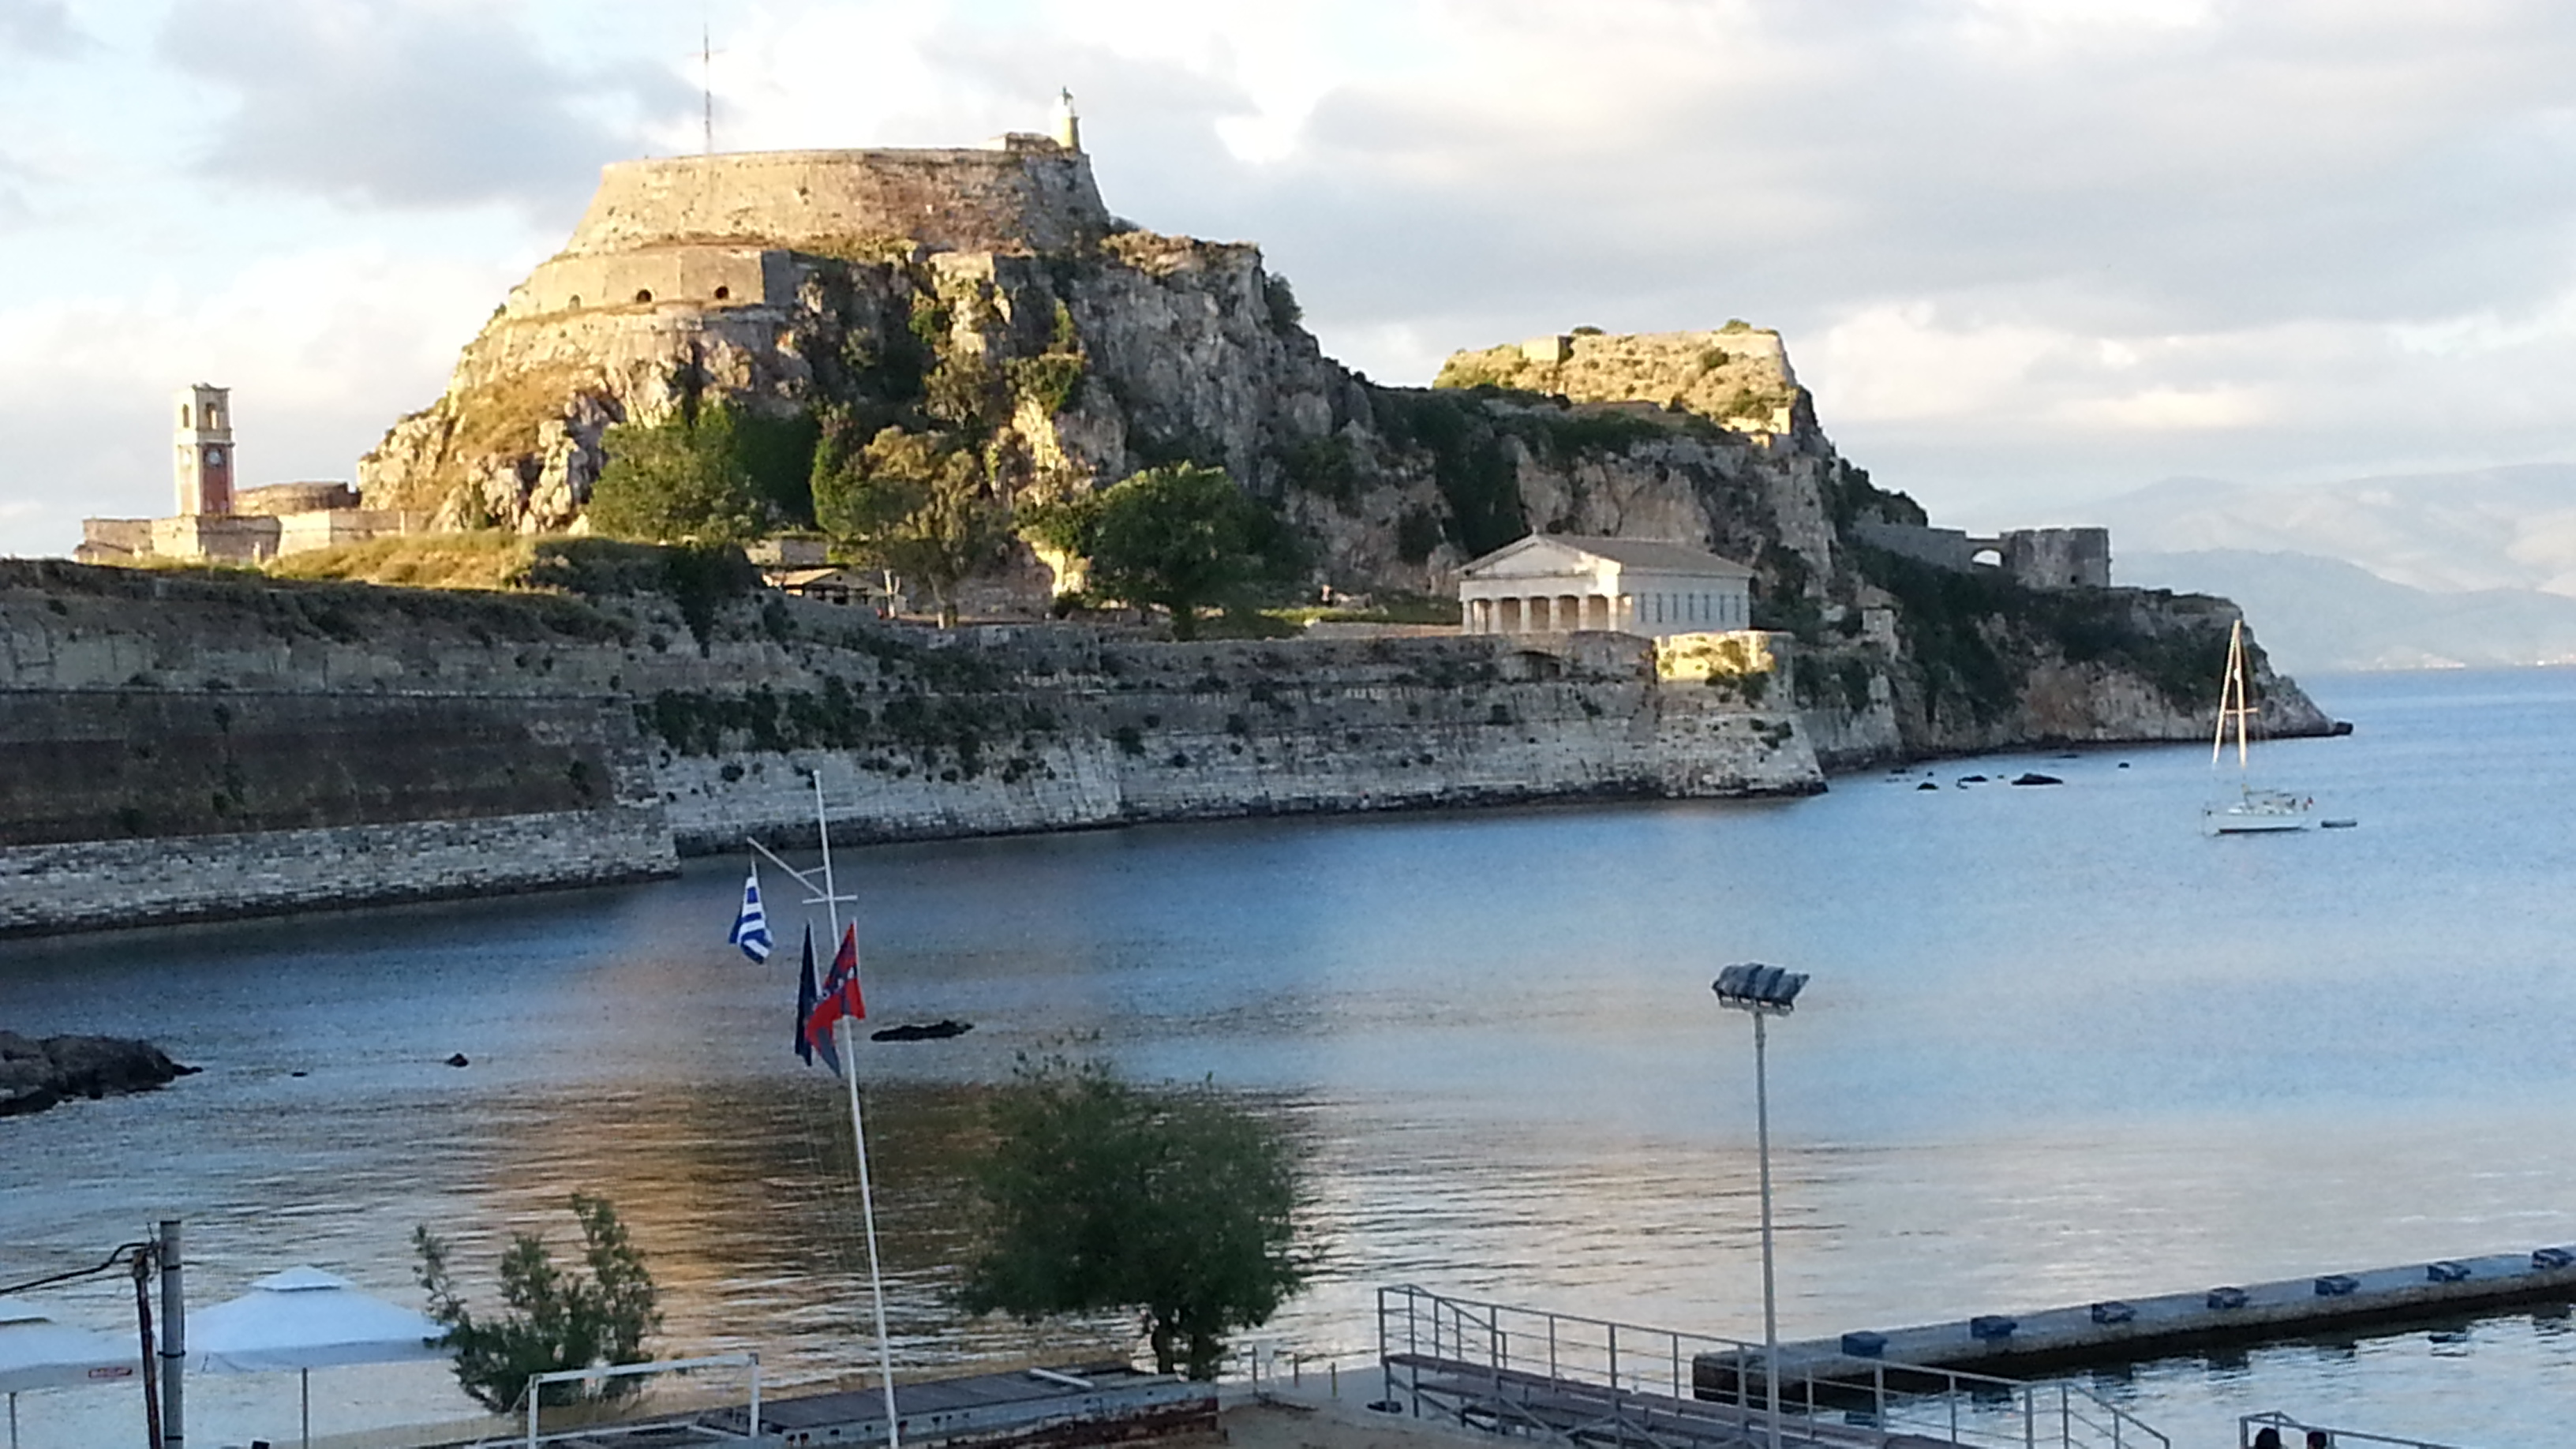 Sights of Corfu - Fortezza, the Old Fortress